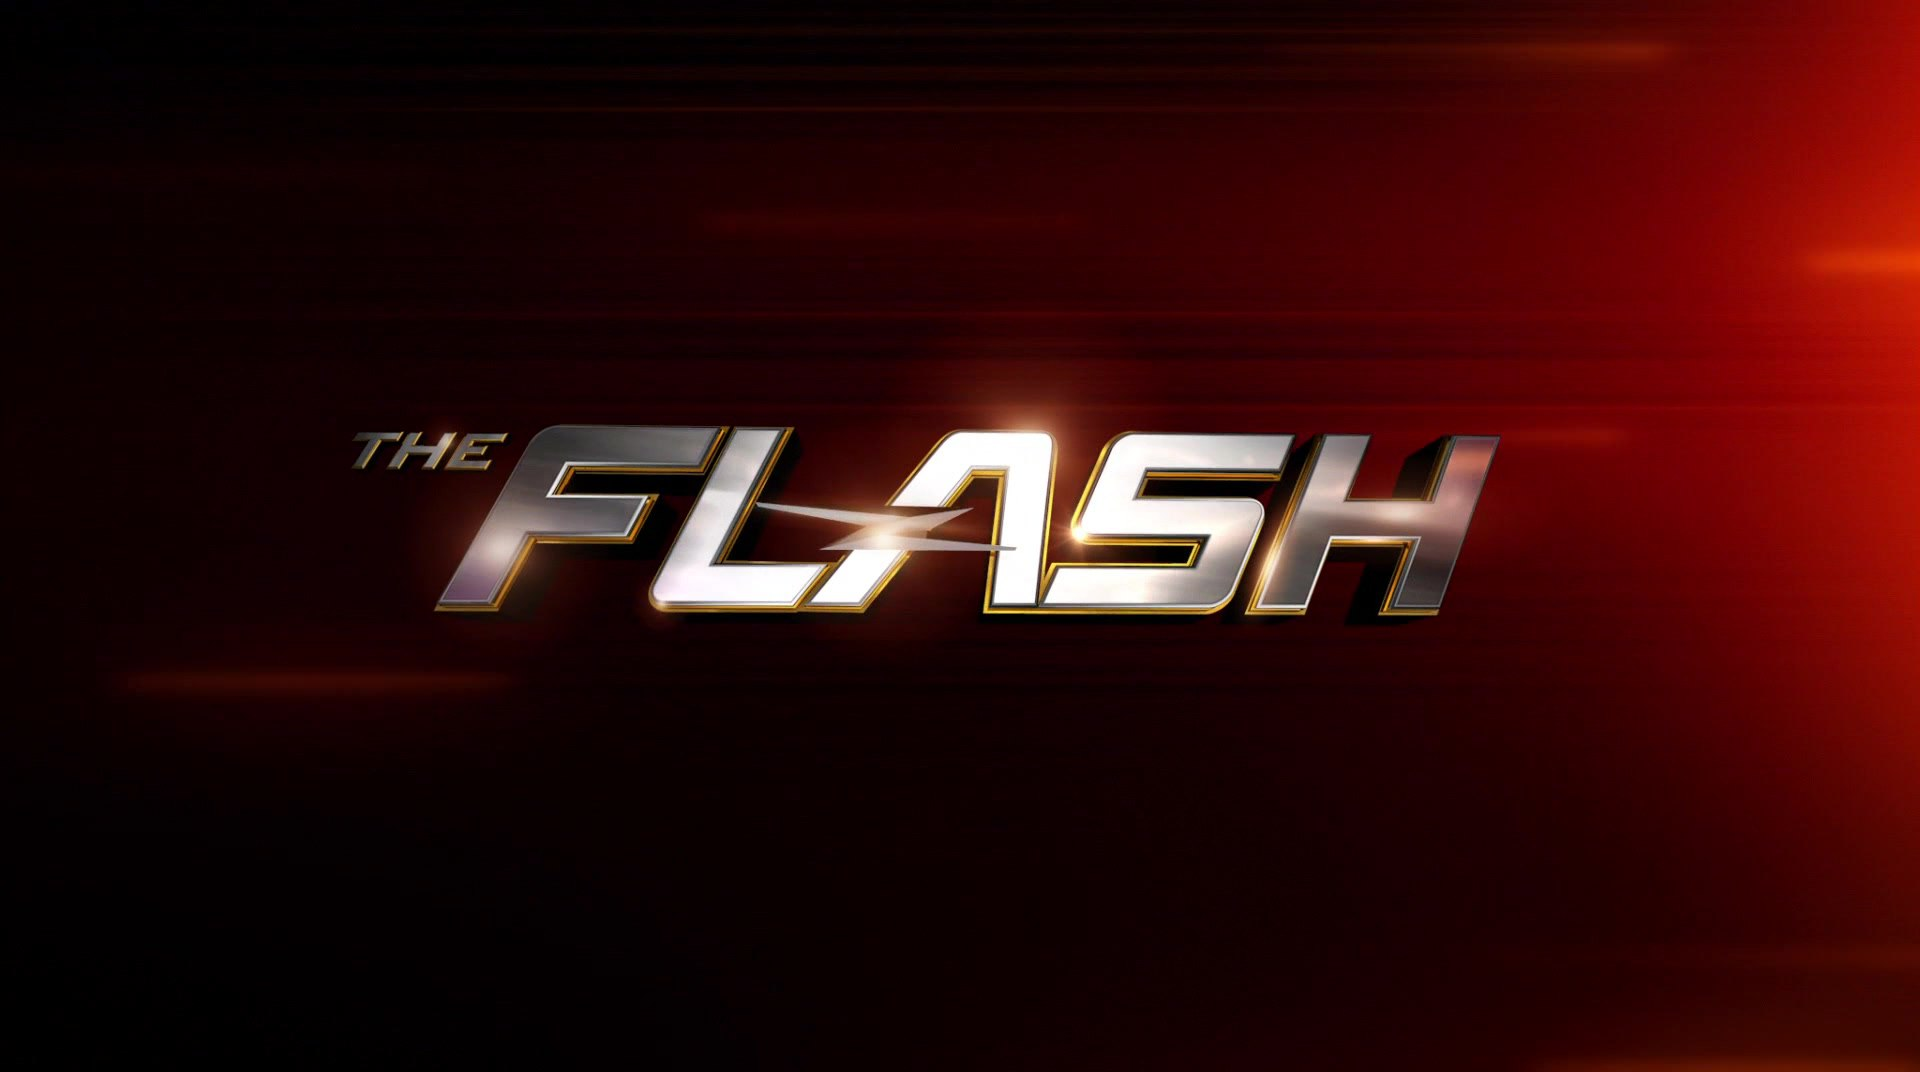 The Flash (2014 TV Series) Episode: Therefore I Am